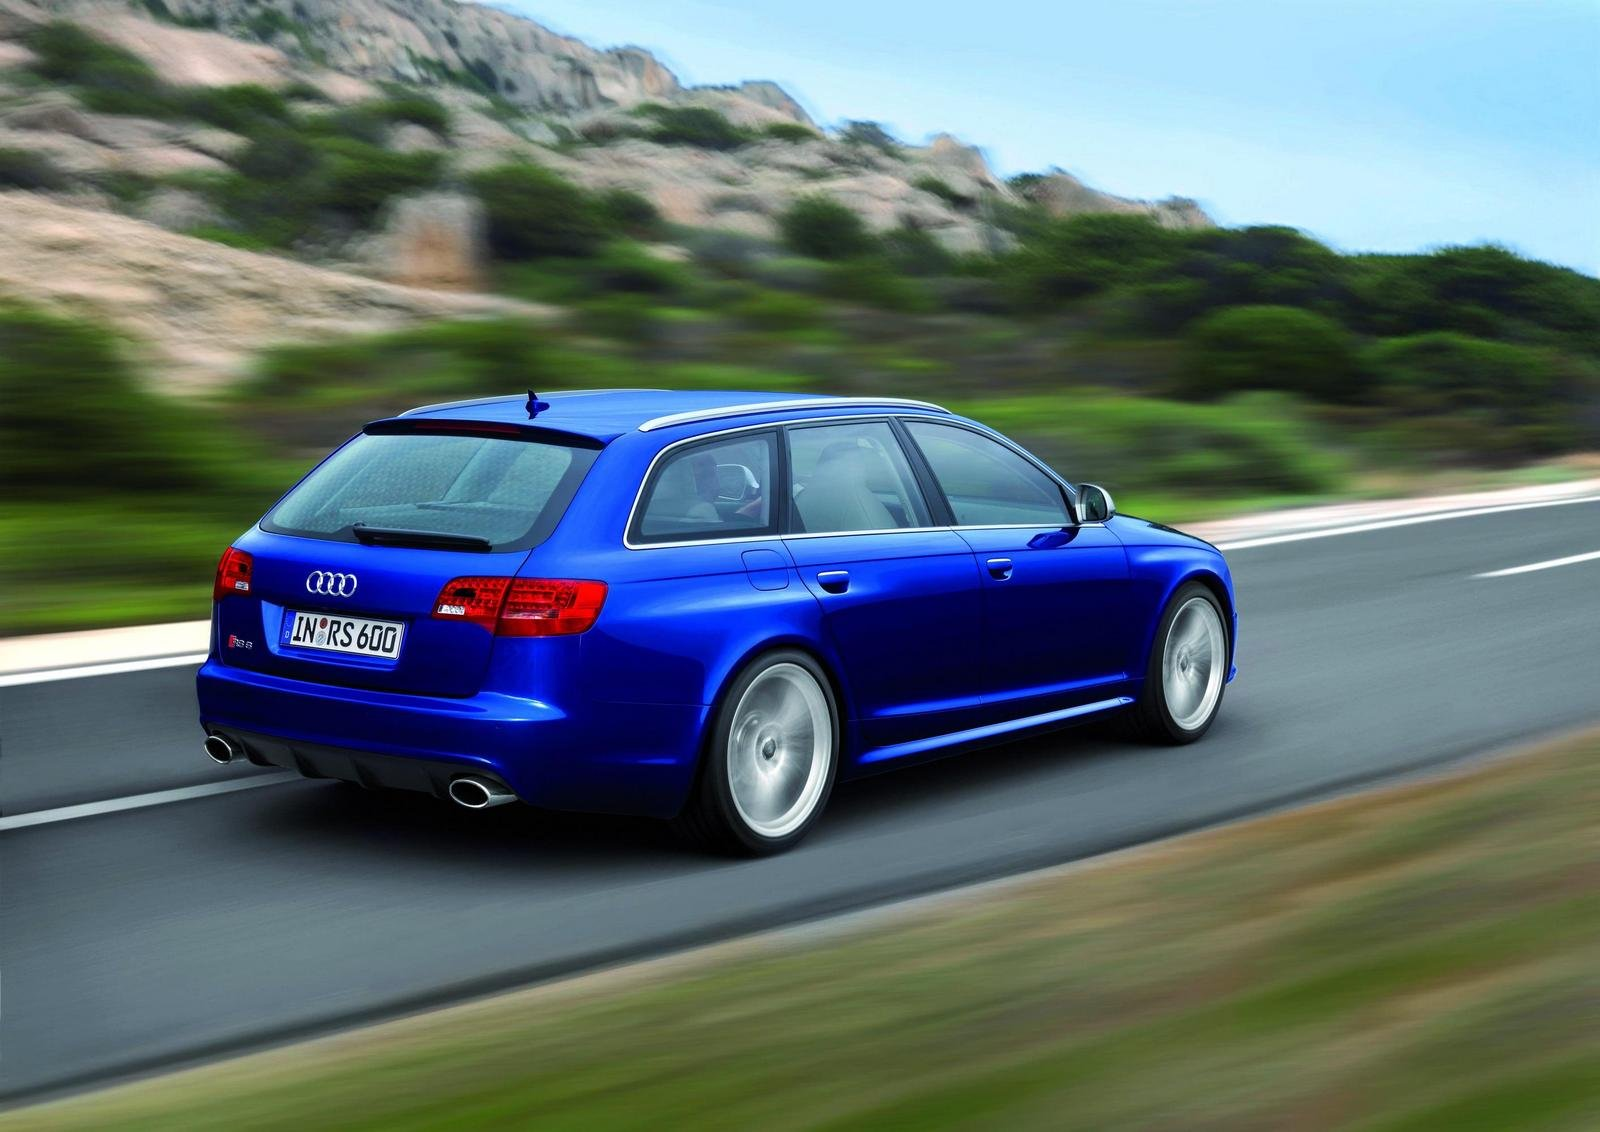 2008 audi rs6 avant picture 227844 car review top speed. Black Bedroom Furniture Sets. Home Design Ideas